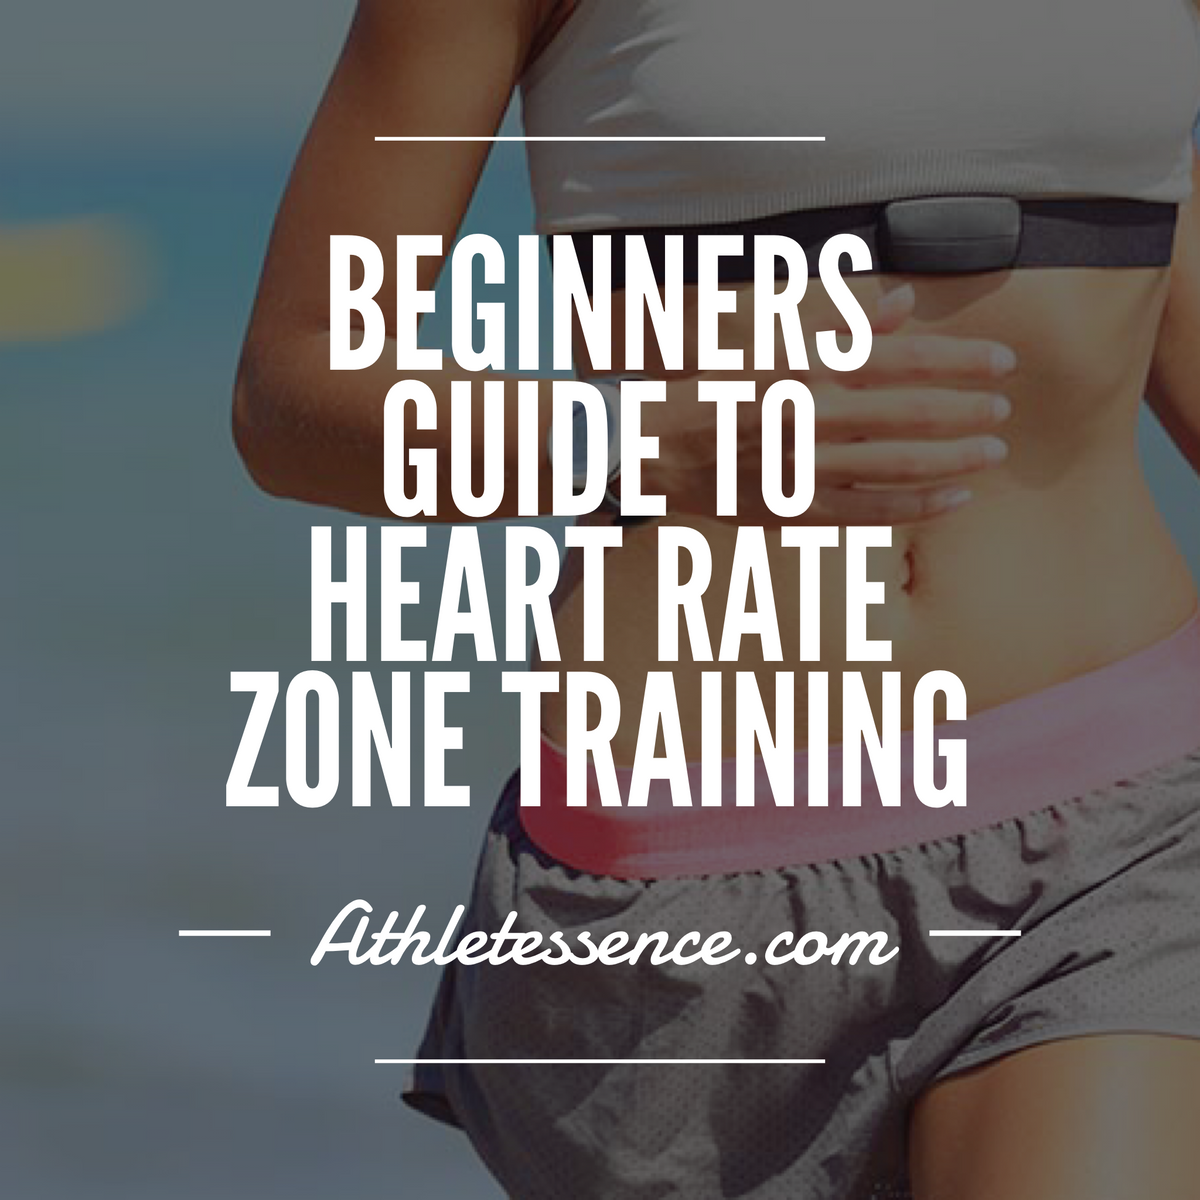 A Beginner's Guide To Heart Rate Training Zones